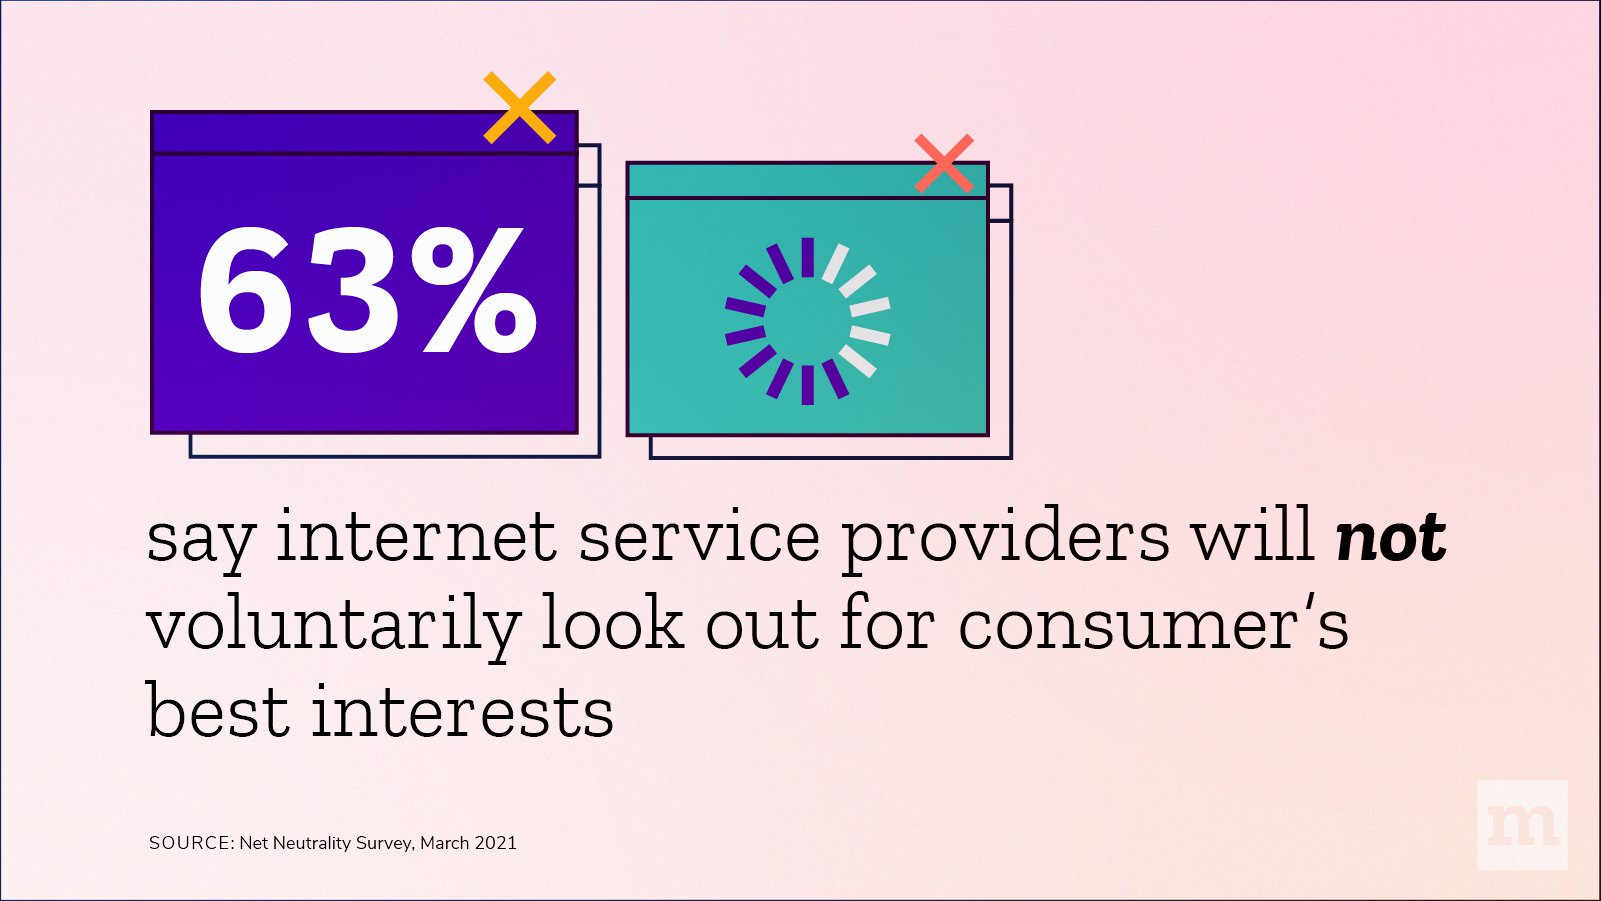 63% say ISPs will NOT voluntarily look out for consumer's best interests